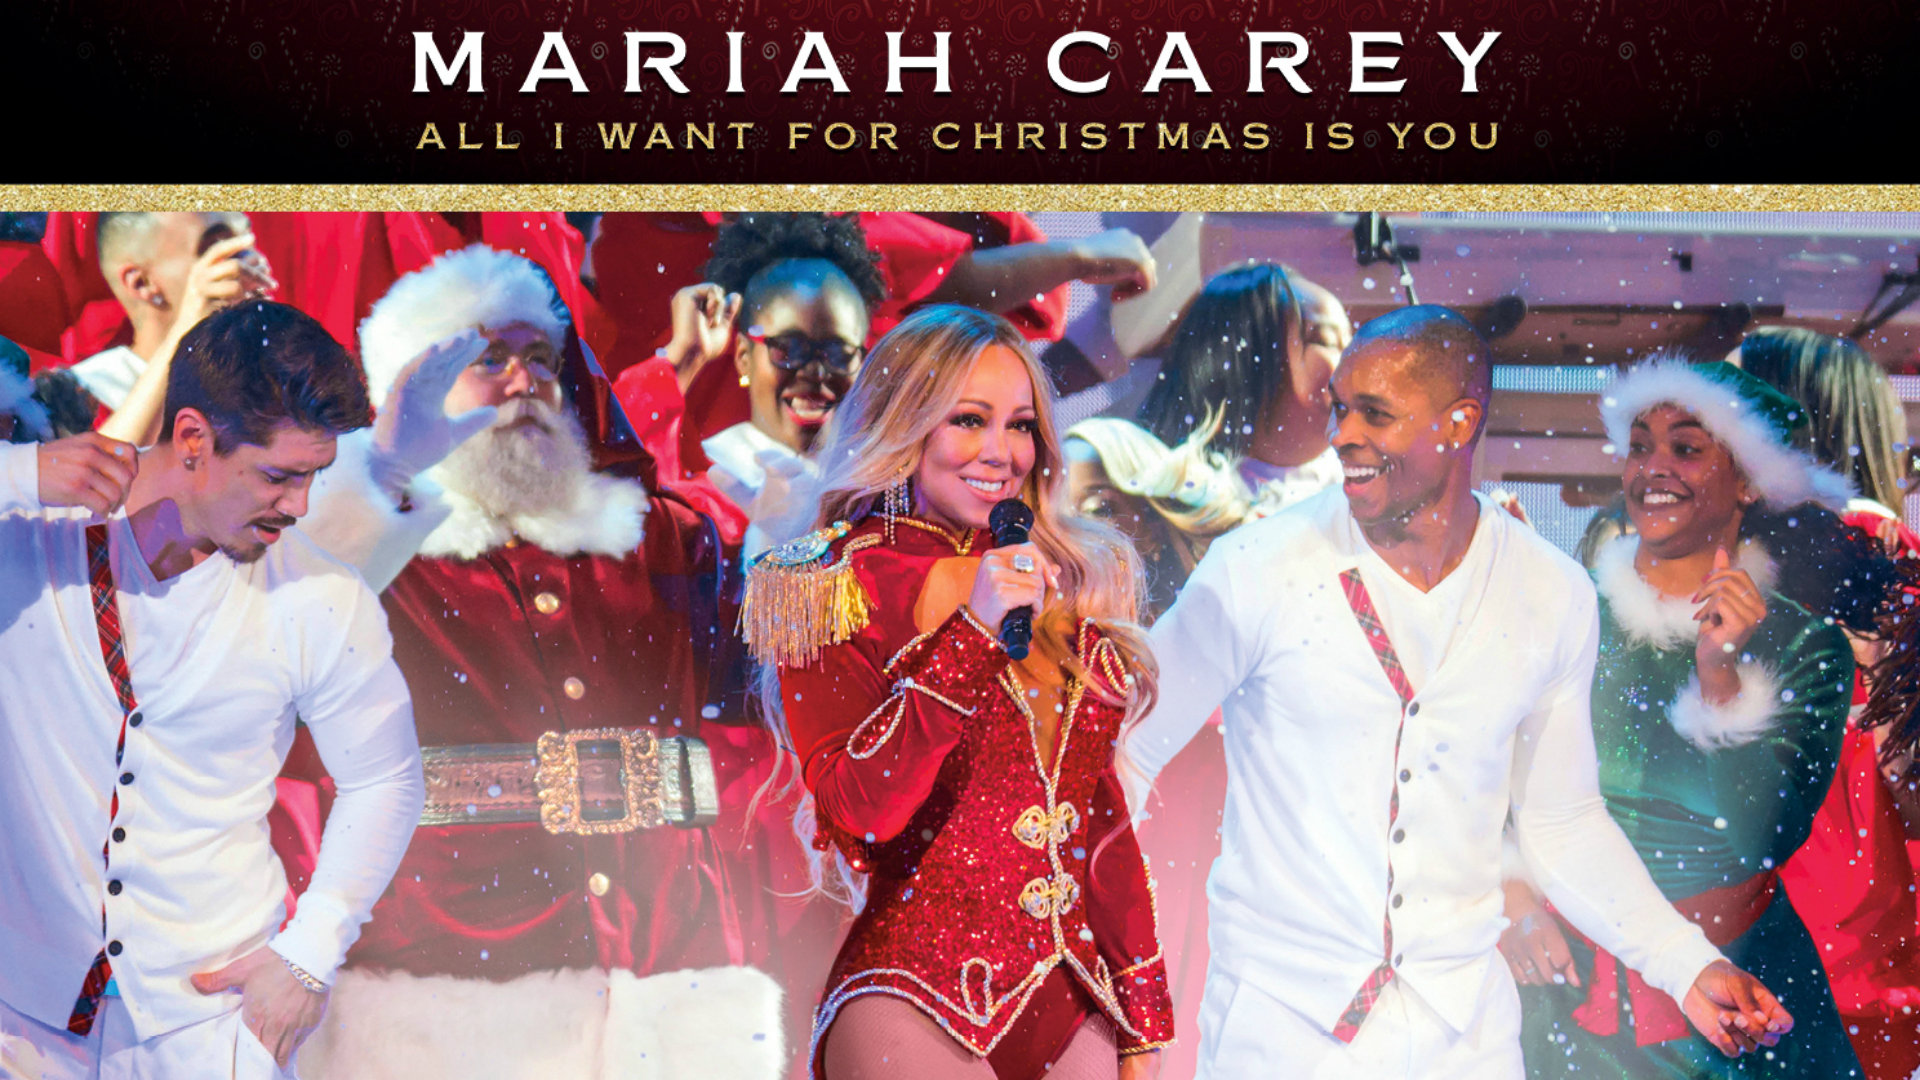 Mariah Carey's All I Want For Christmas Is You at The O2. Image courtesy of The O2.